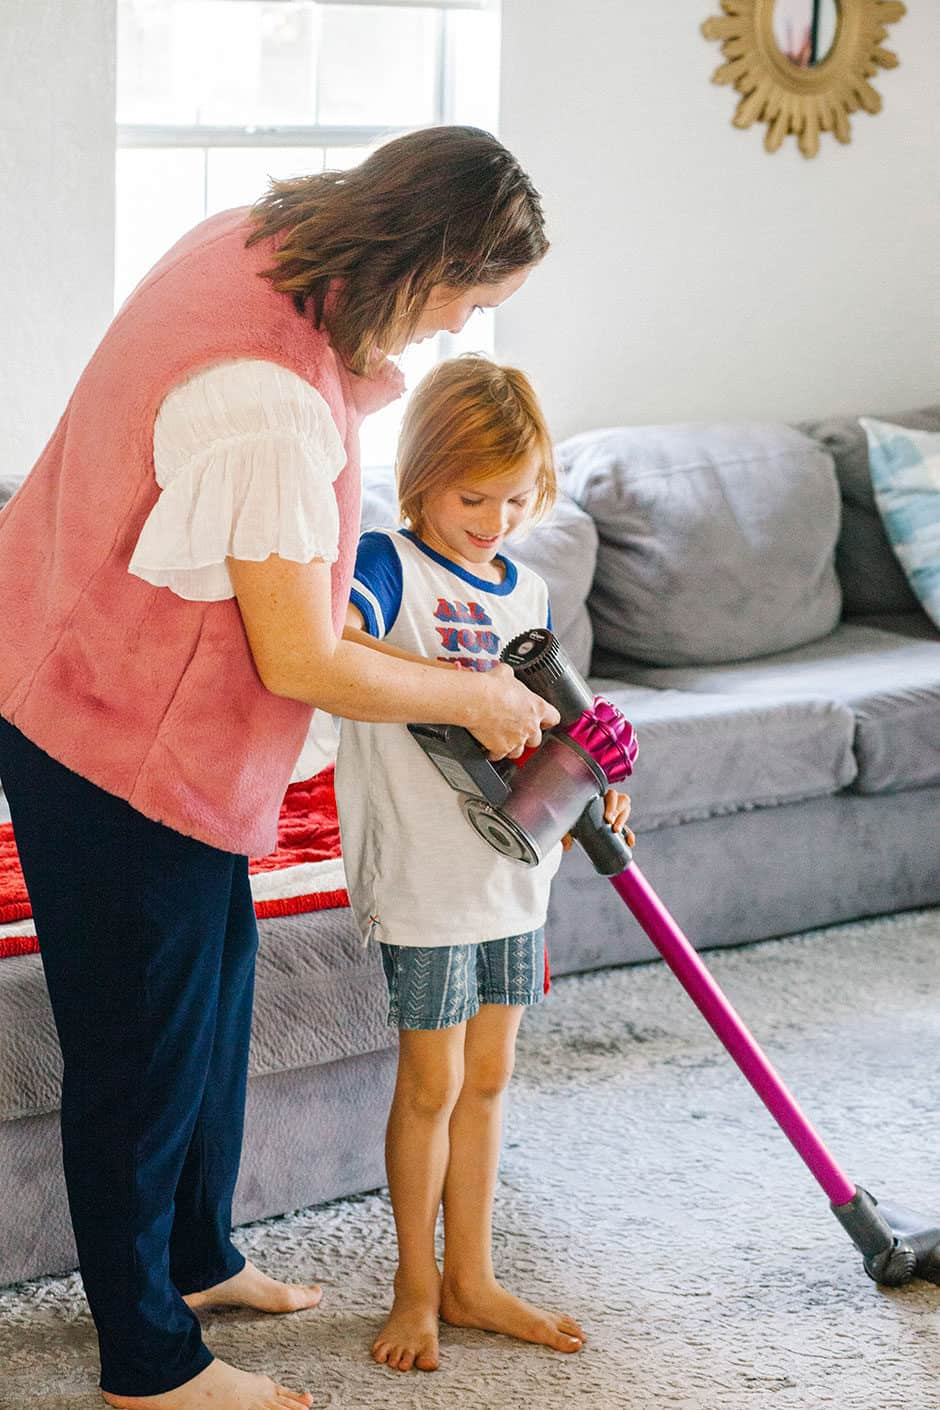 Every mom deals with dirt but this daily cleaning schedule, along with some great cleaning products, will have your home looking great in no time!